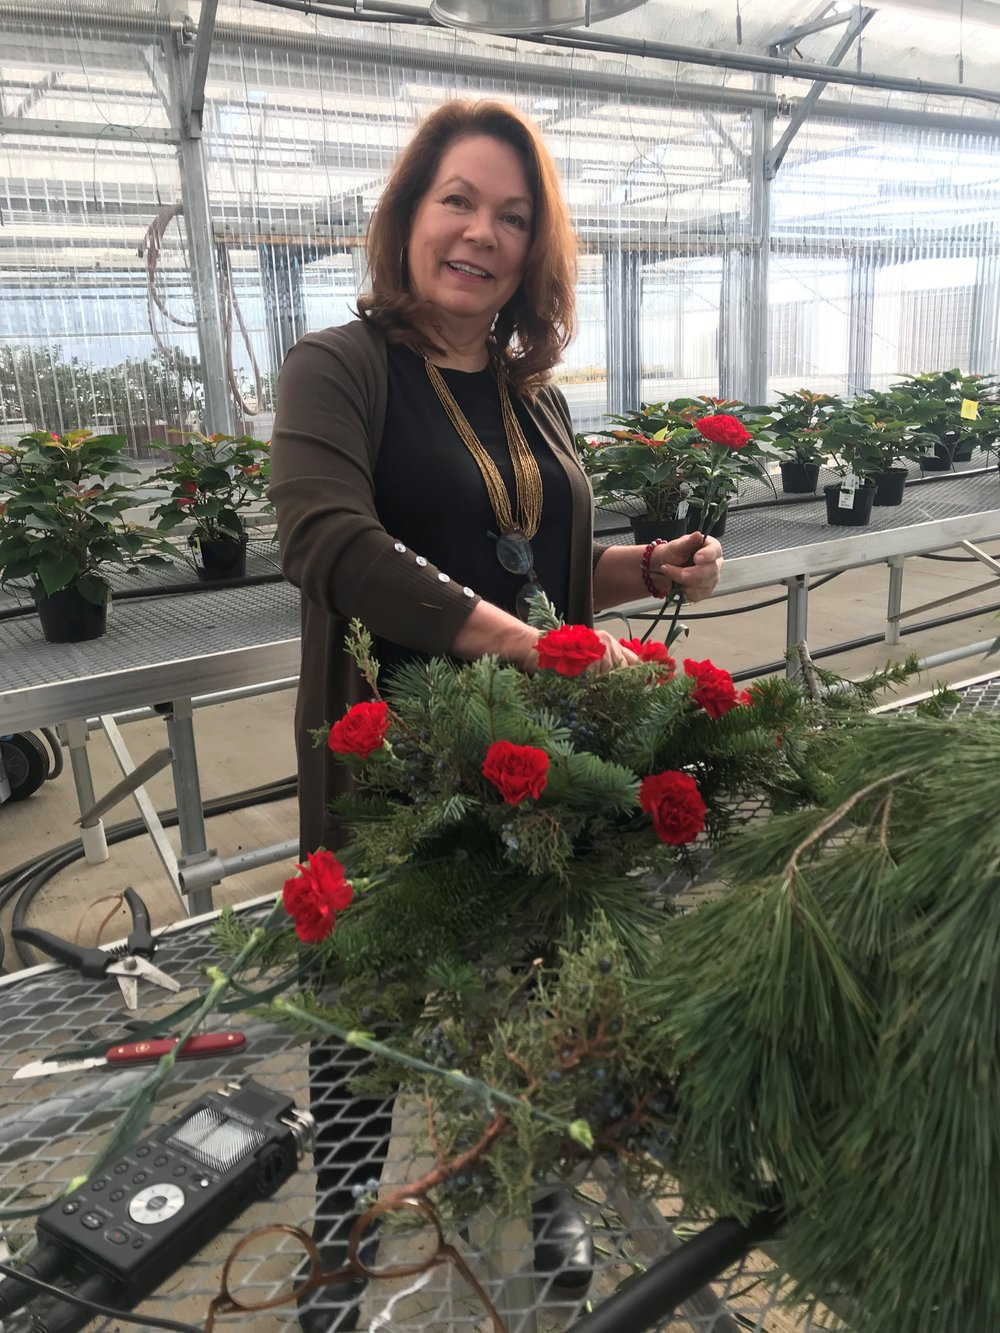 College of DuPage Floral Design instructor Denise Walden takes listeners through the steps of creating a festive centerpiece